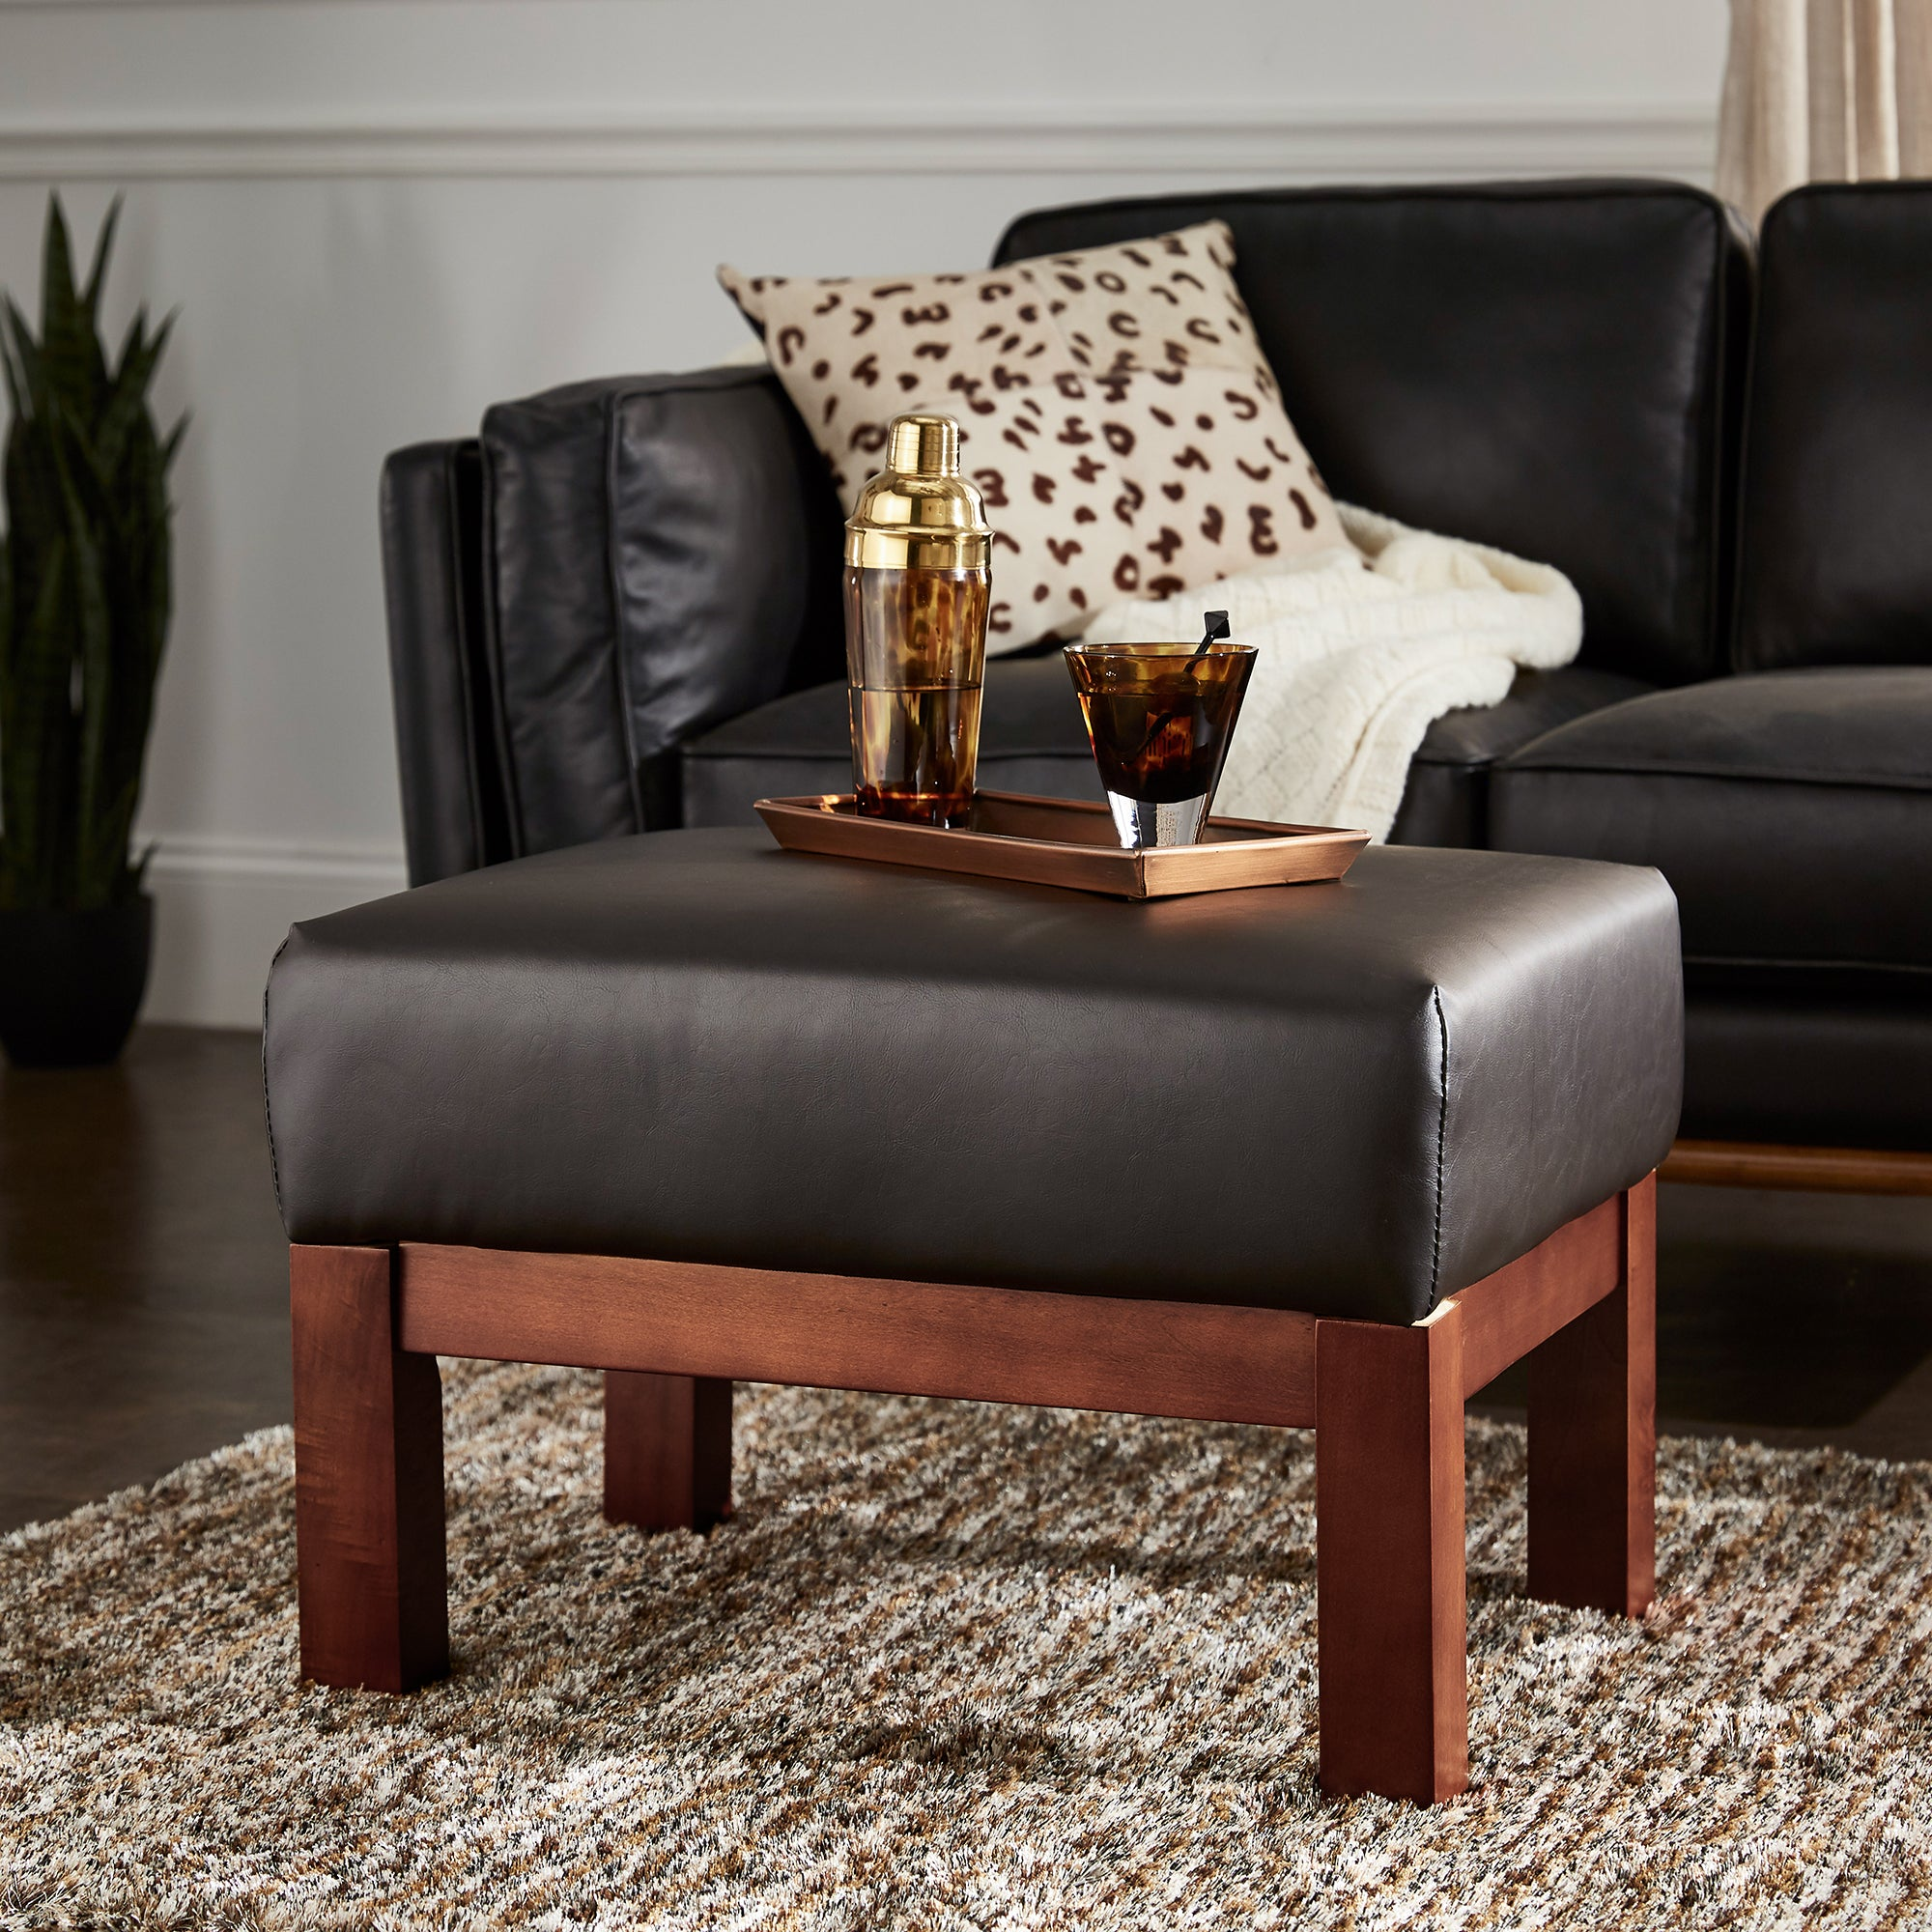 Mission-Style Wood Ottoman - Dark Brown Faux Leather, Oak Finish